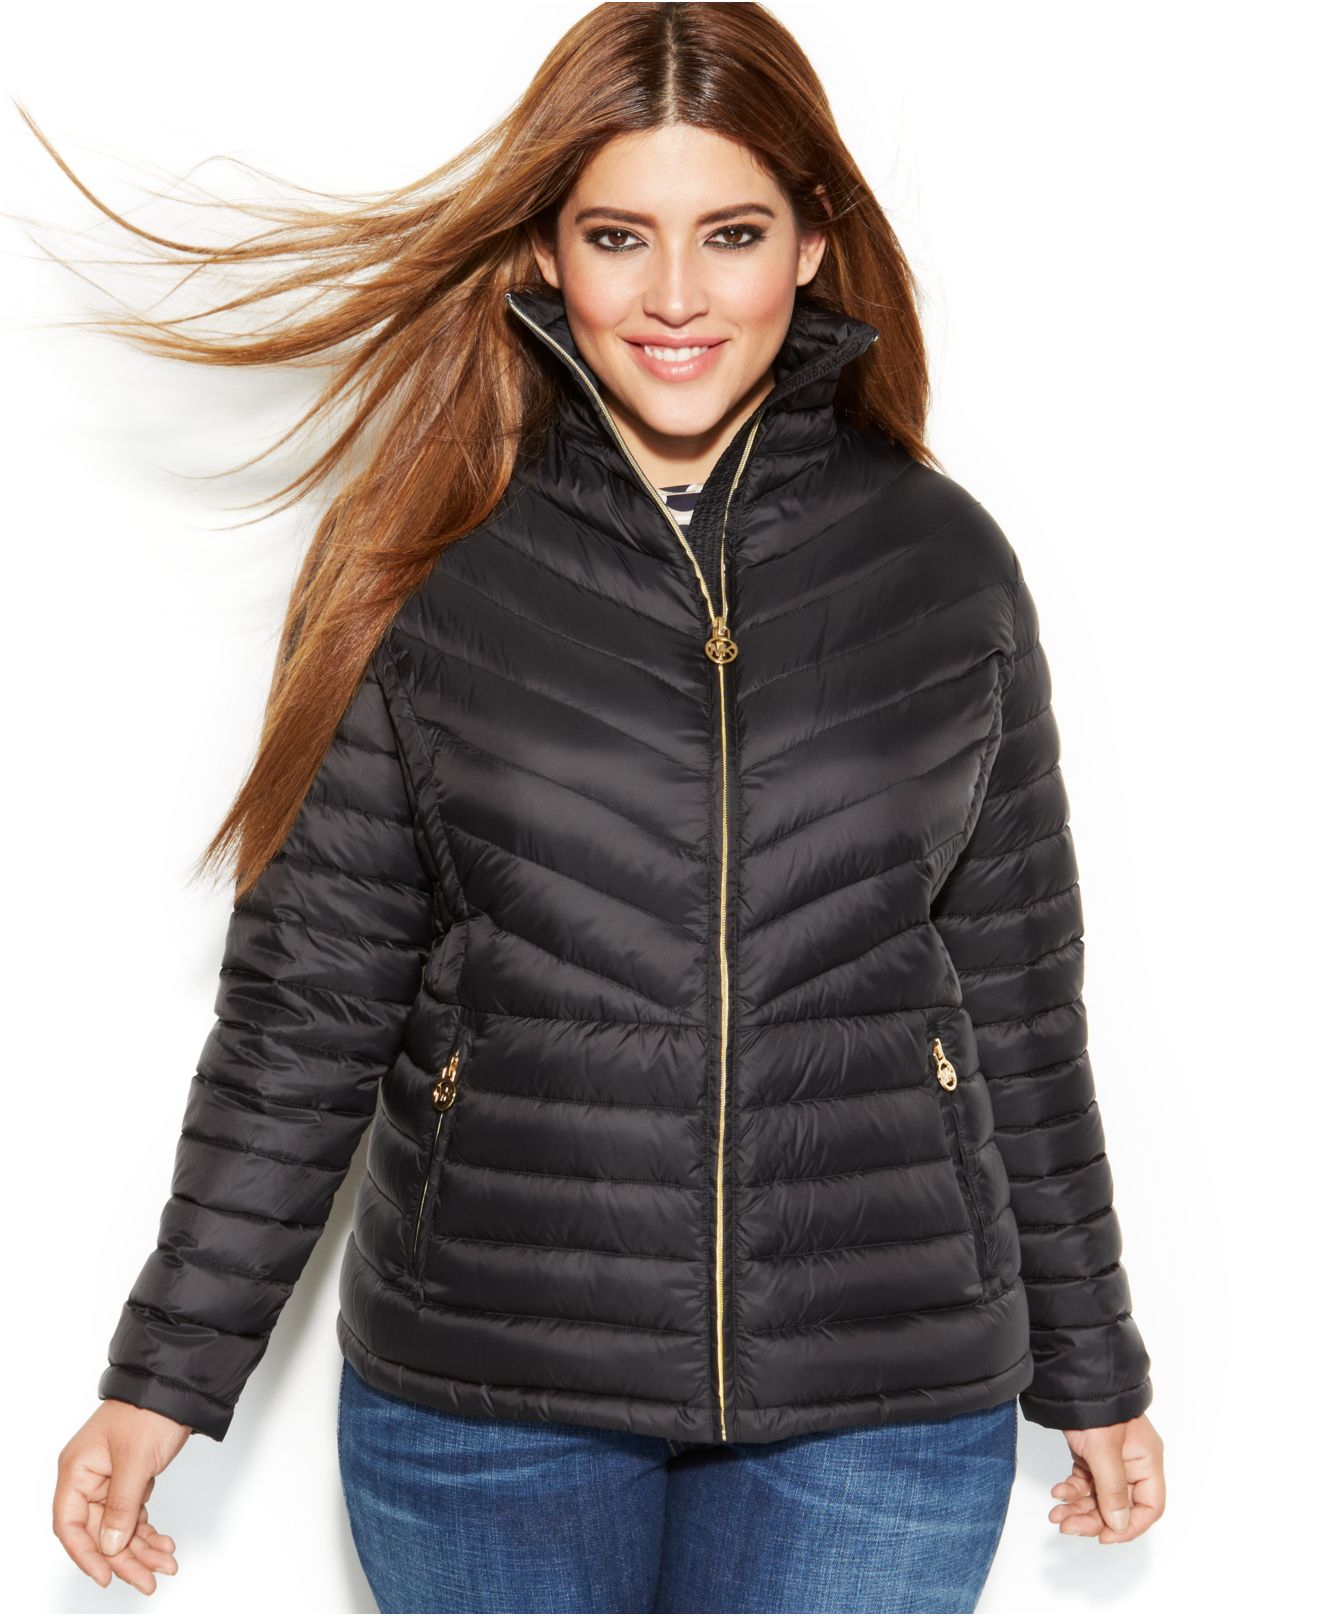 dfb6fb11c5e Lyst - Michael Kors Michael Plus Size Packable Quilted Down Puffer ...